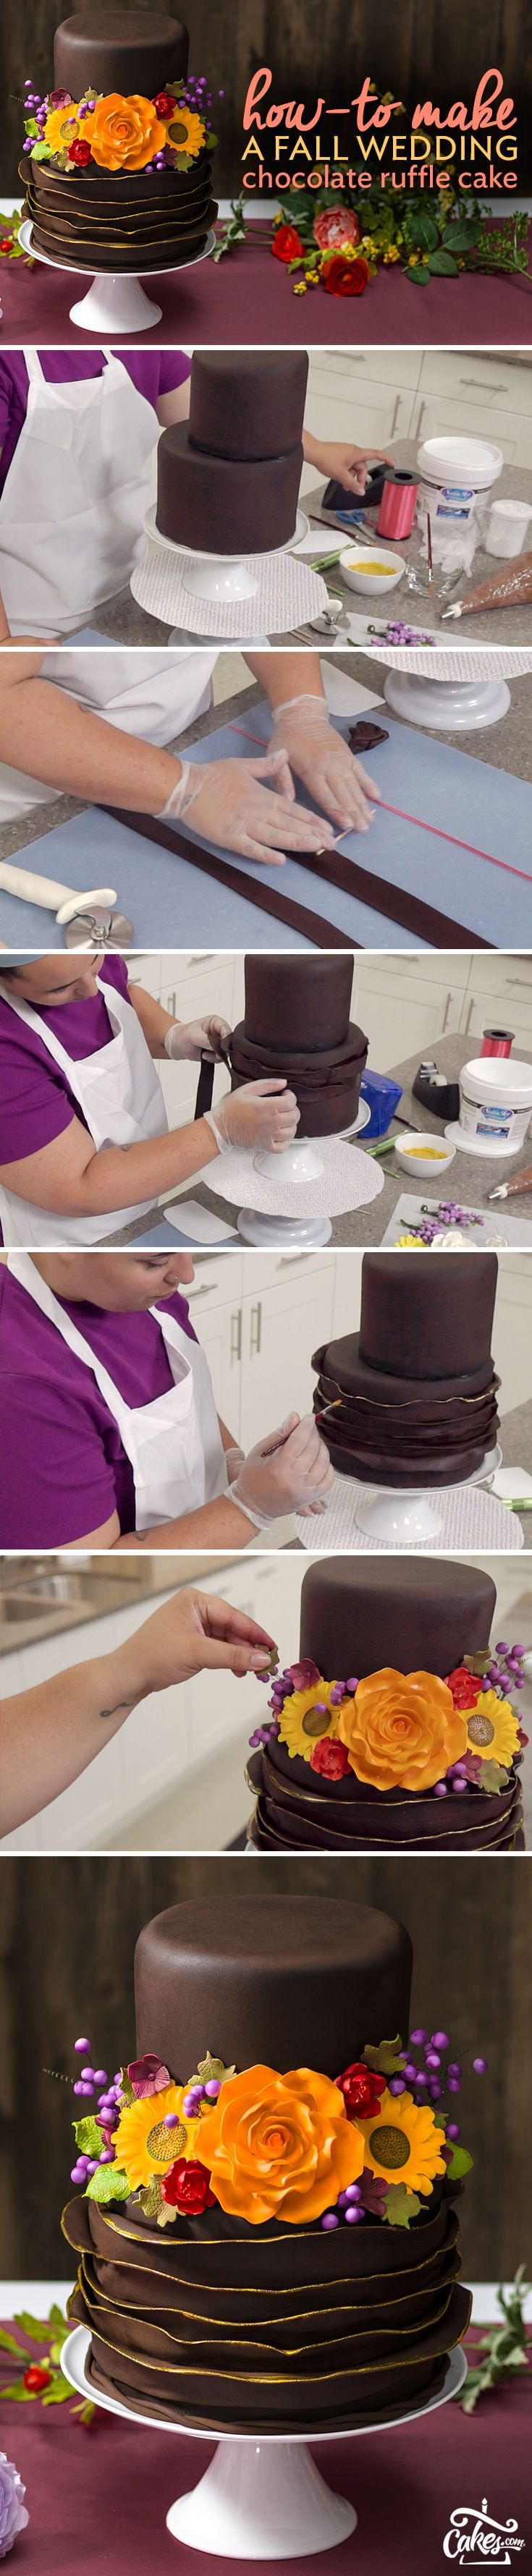 Make a fondant chocolate cake fit for royalty with gold accents and gum paste flowers. It's surprisingly simple to make and will look gorgeous at any fall wedding.